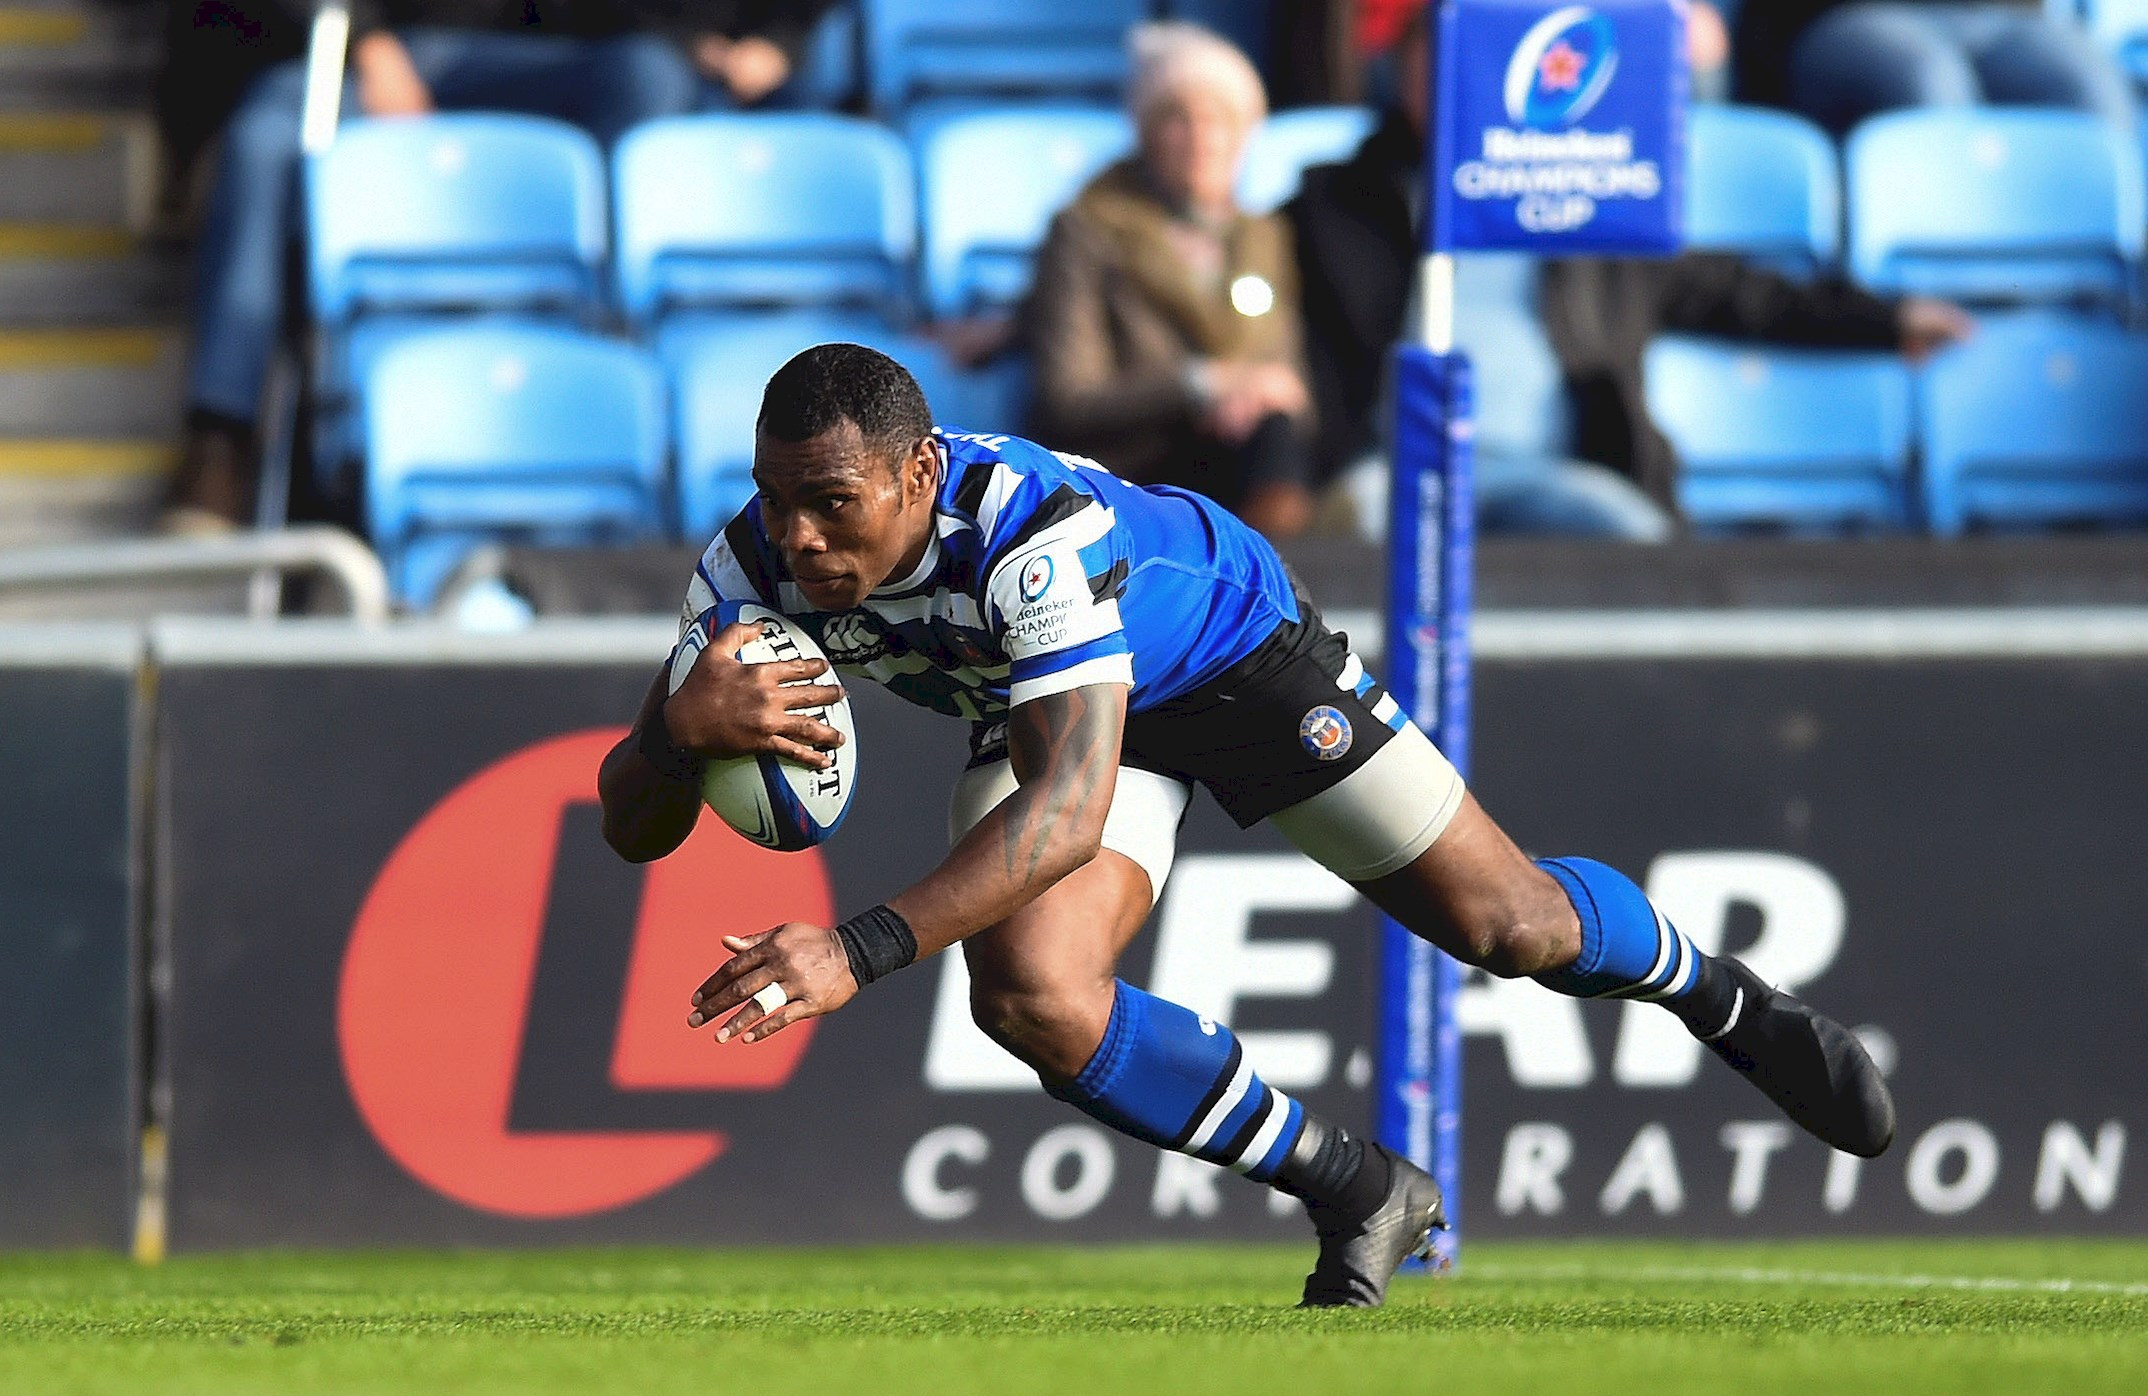 Spoils shared in 10-try thriller at the Ricoh Arena